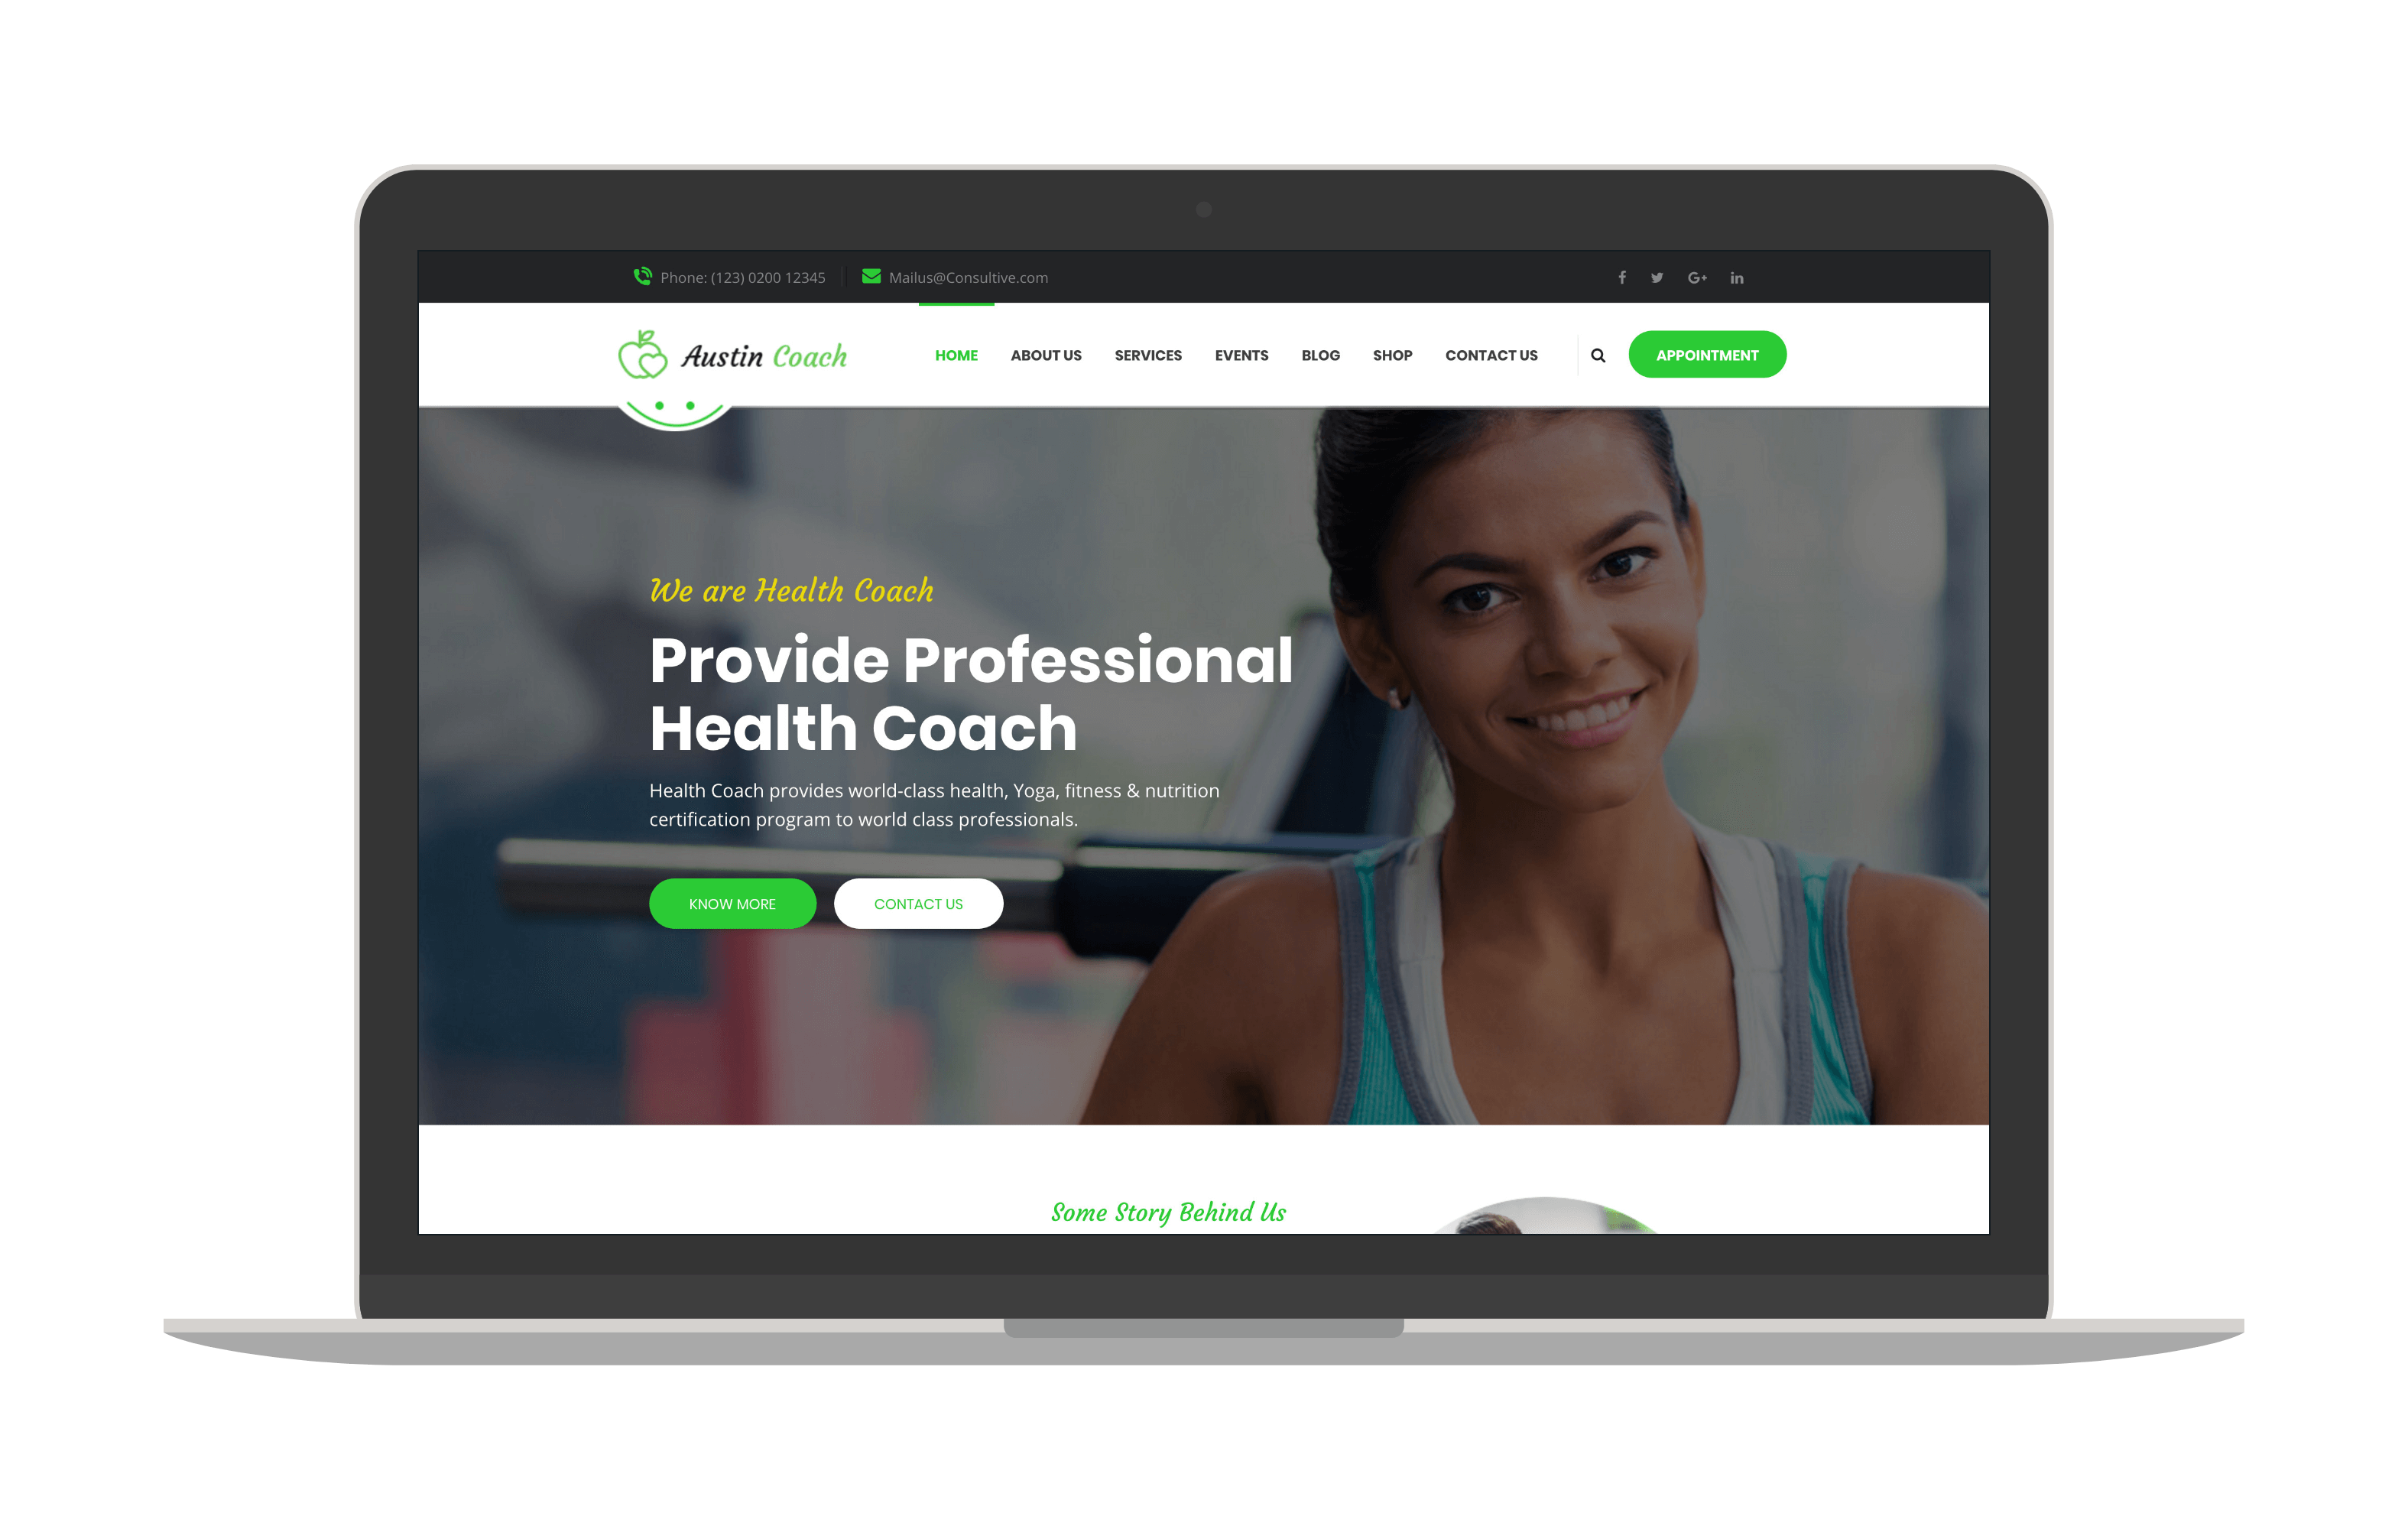 austincoach joomla template